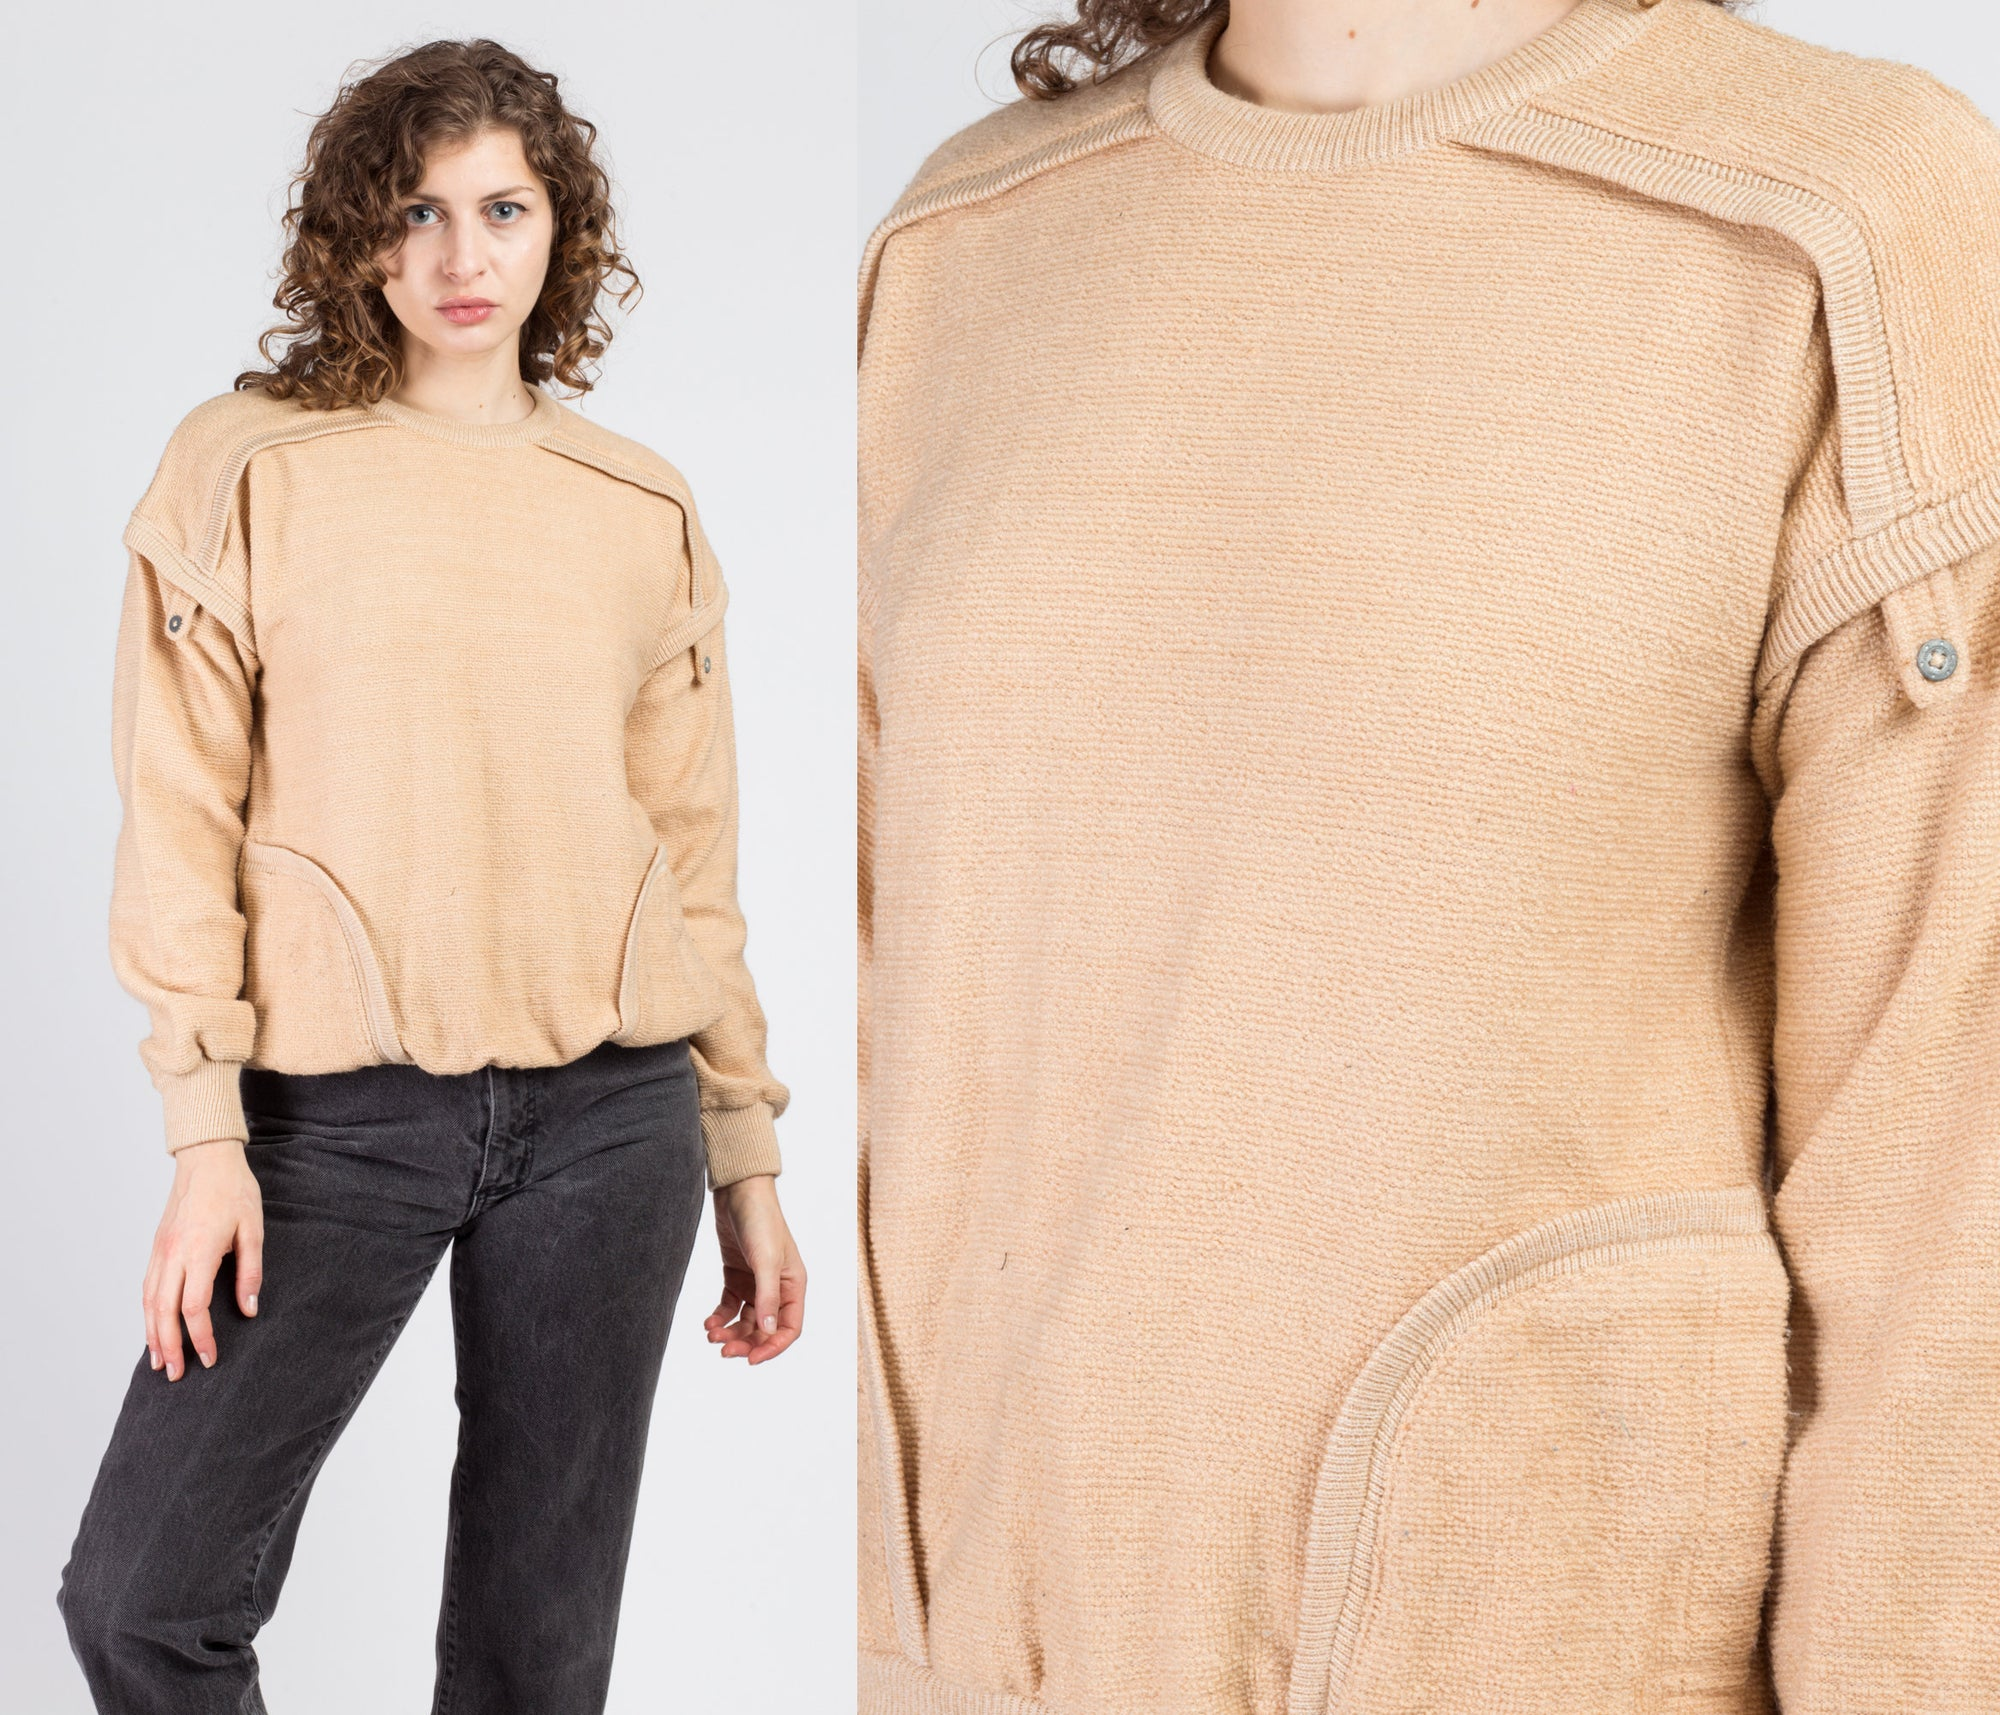 80s Tan Knit Pocket Sweater - Small to Medium